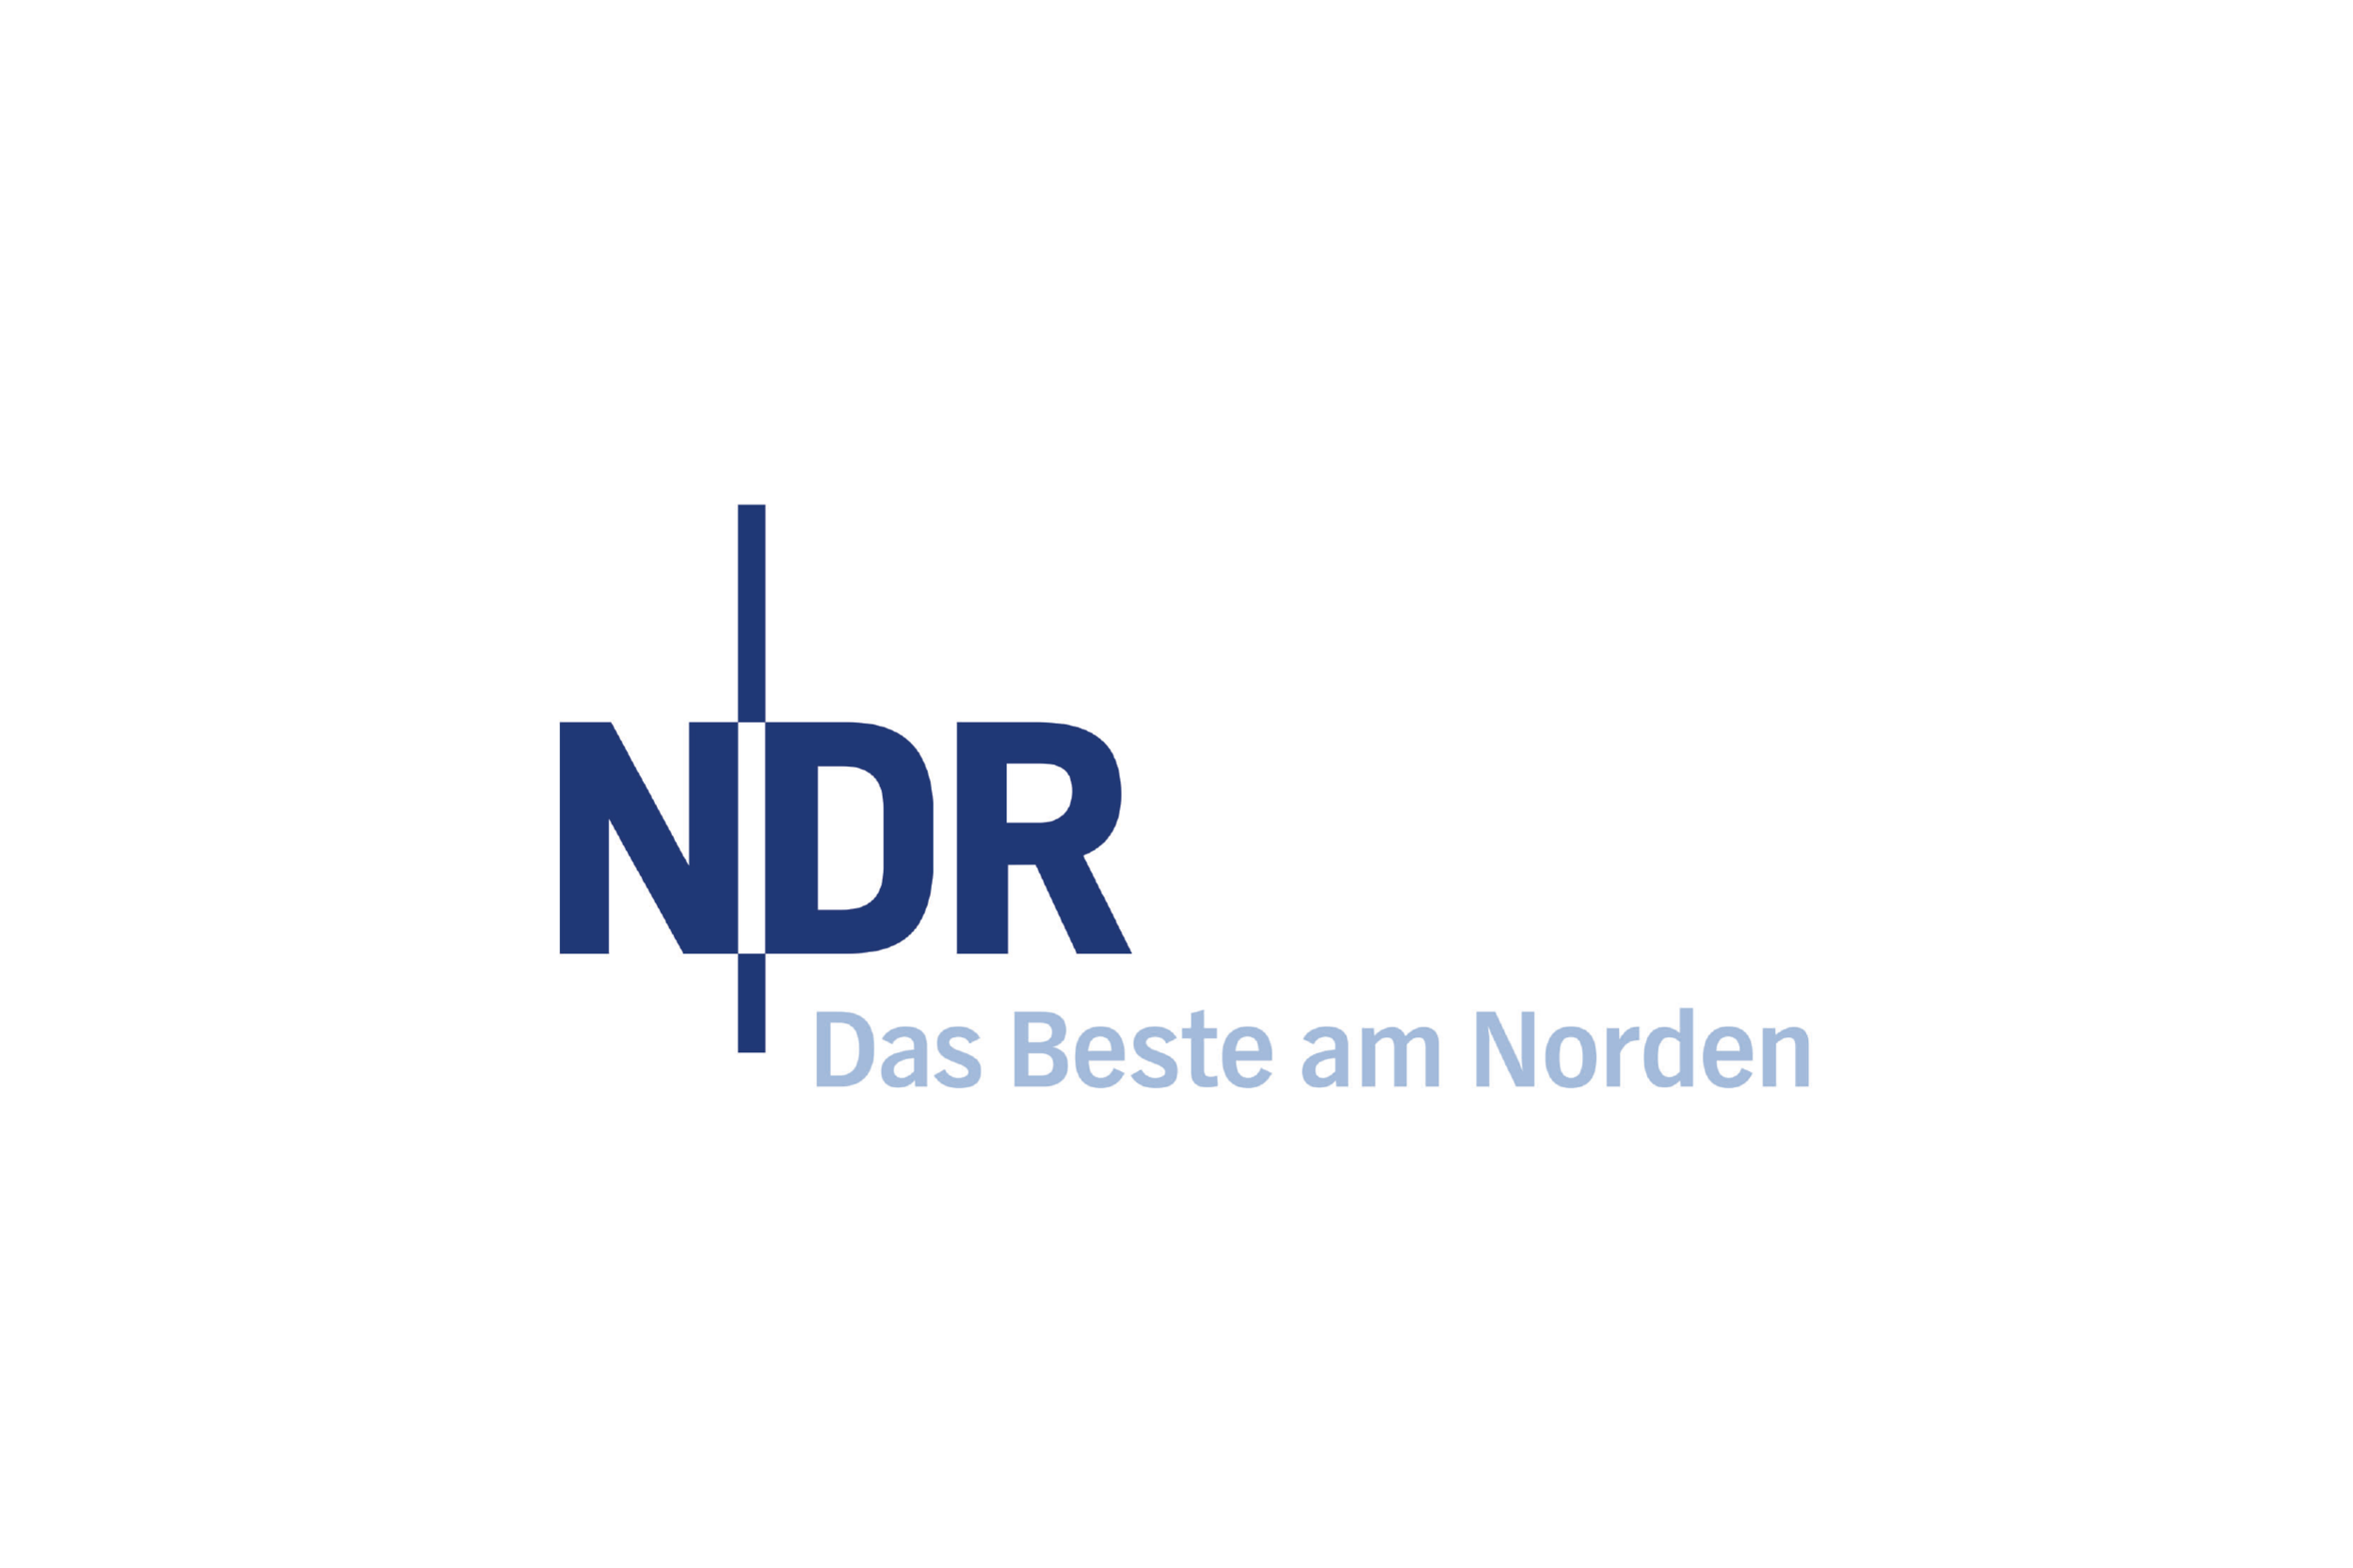 NDR.png